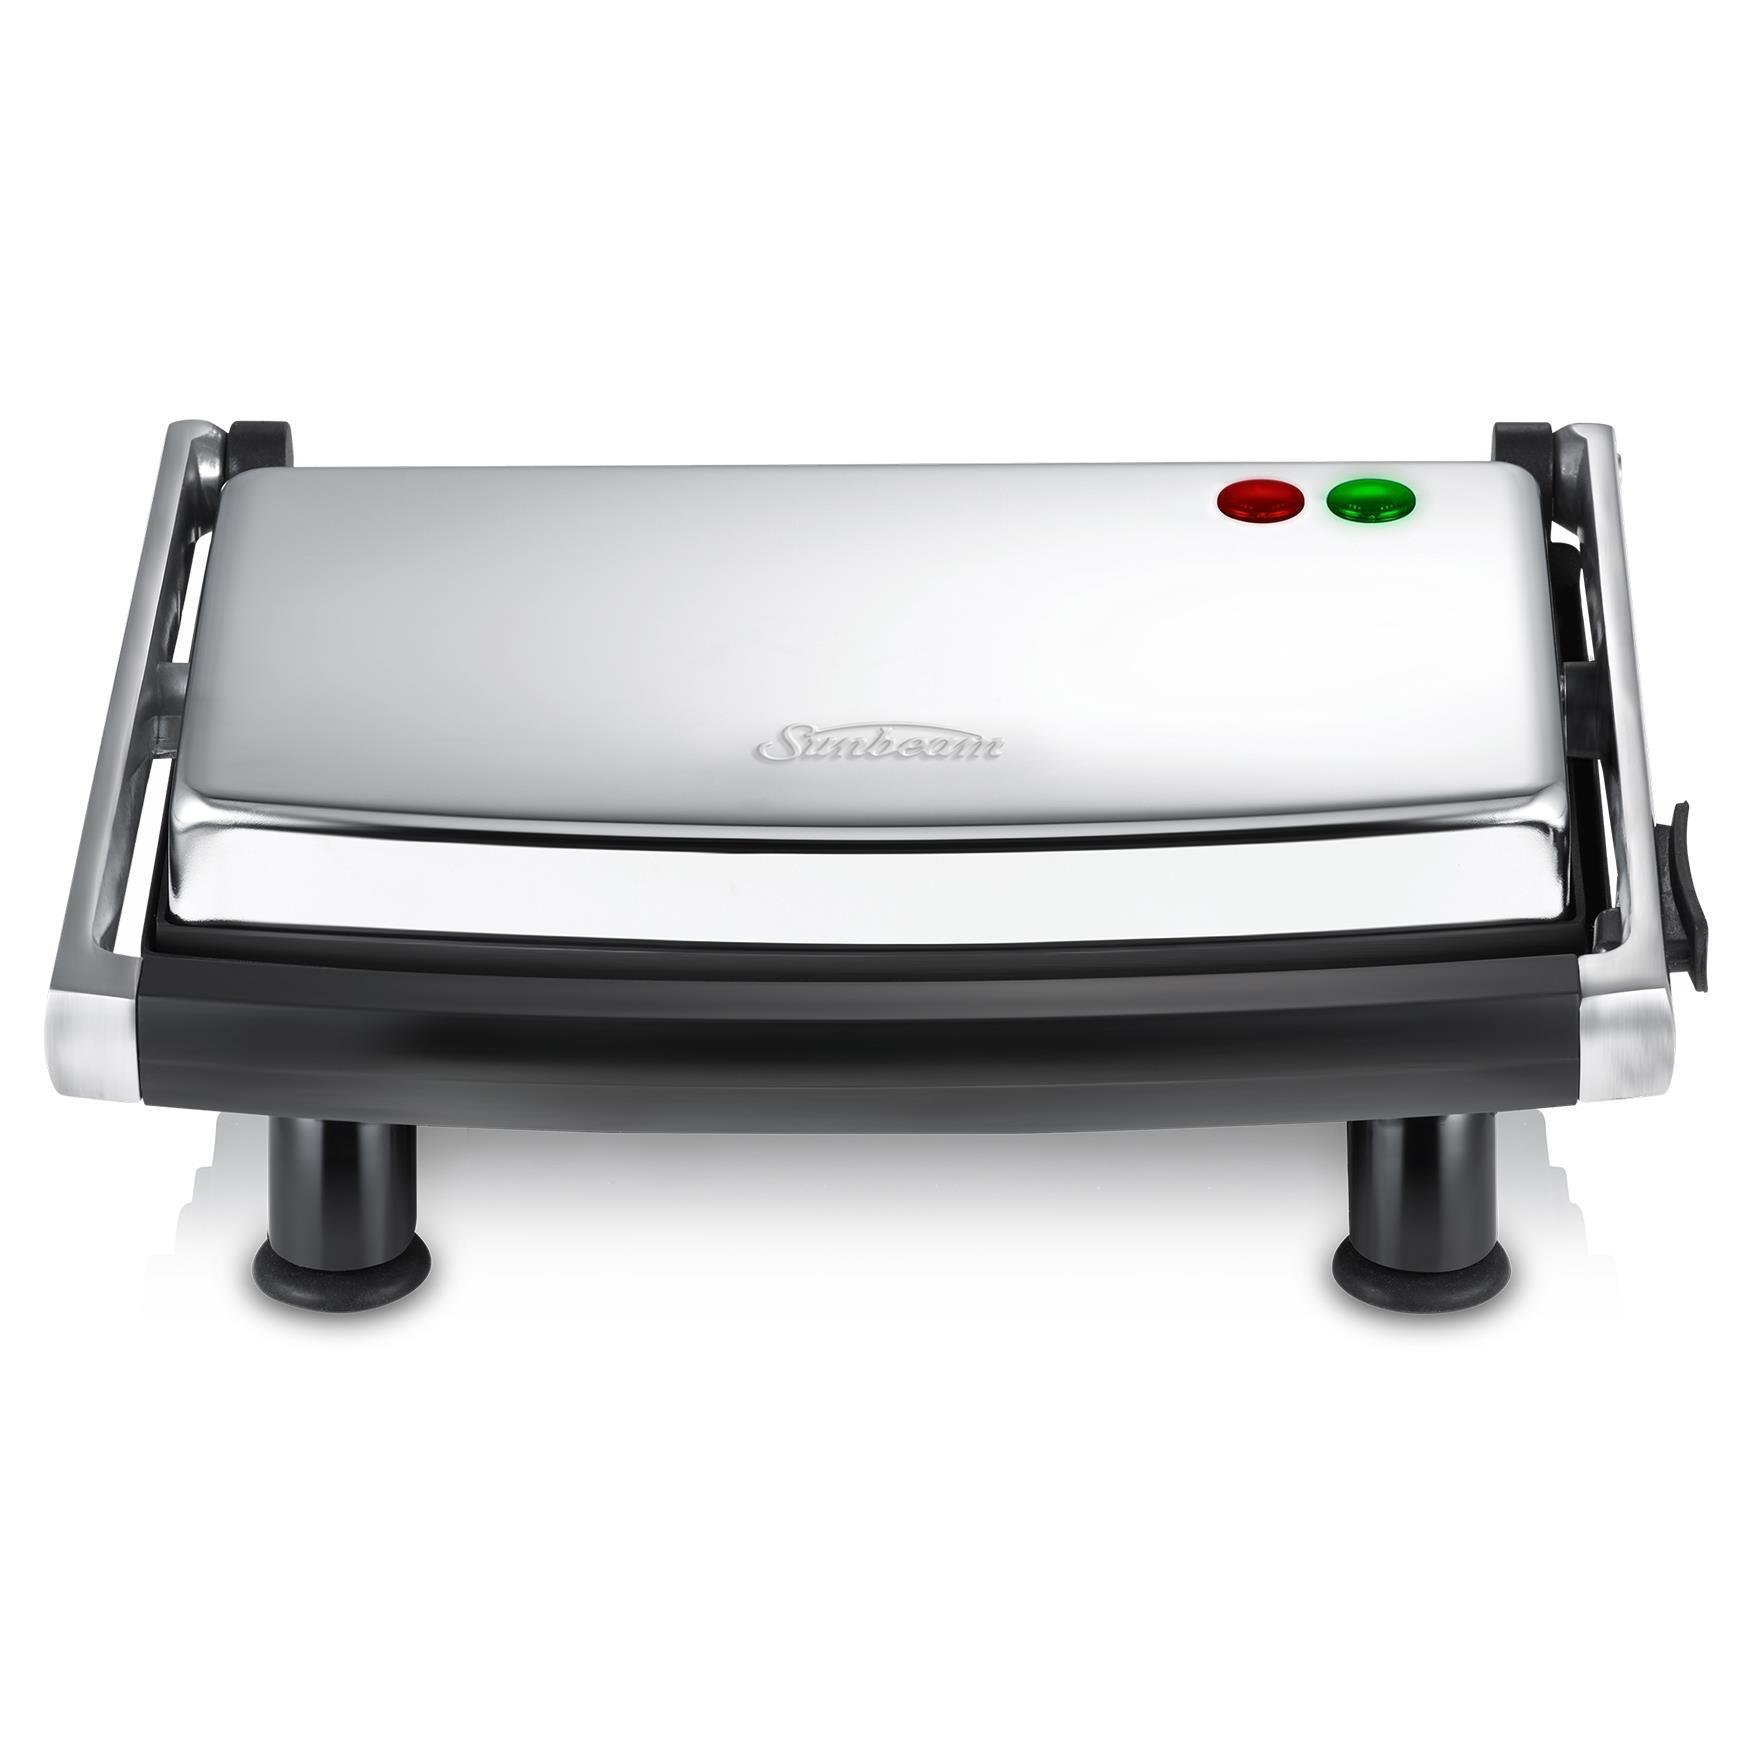 Sunbeam Compact Cafe Grill